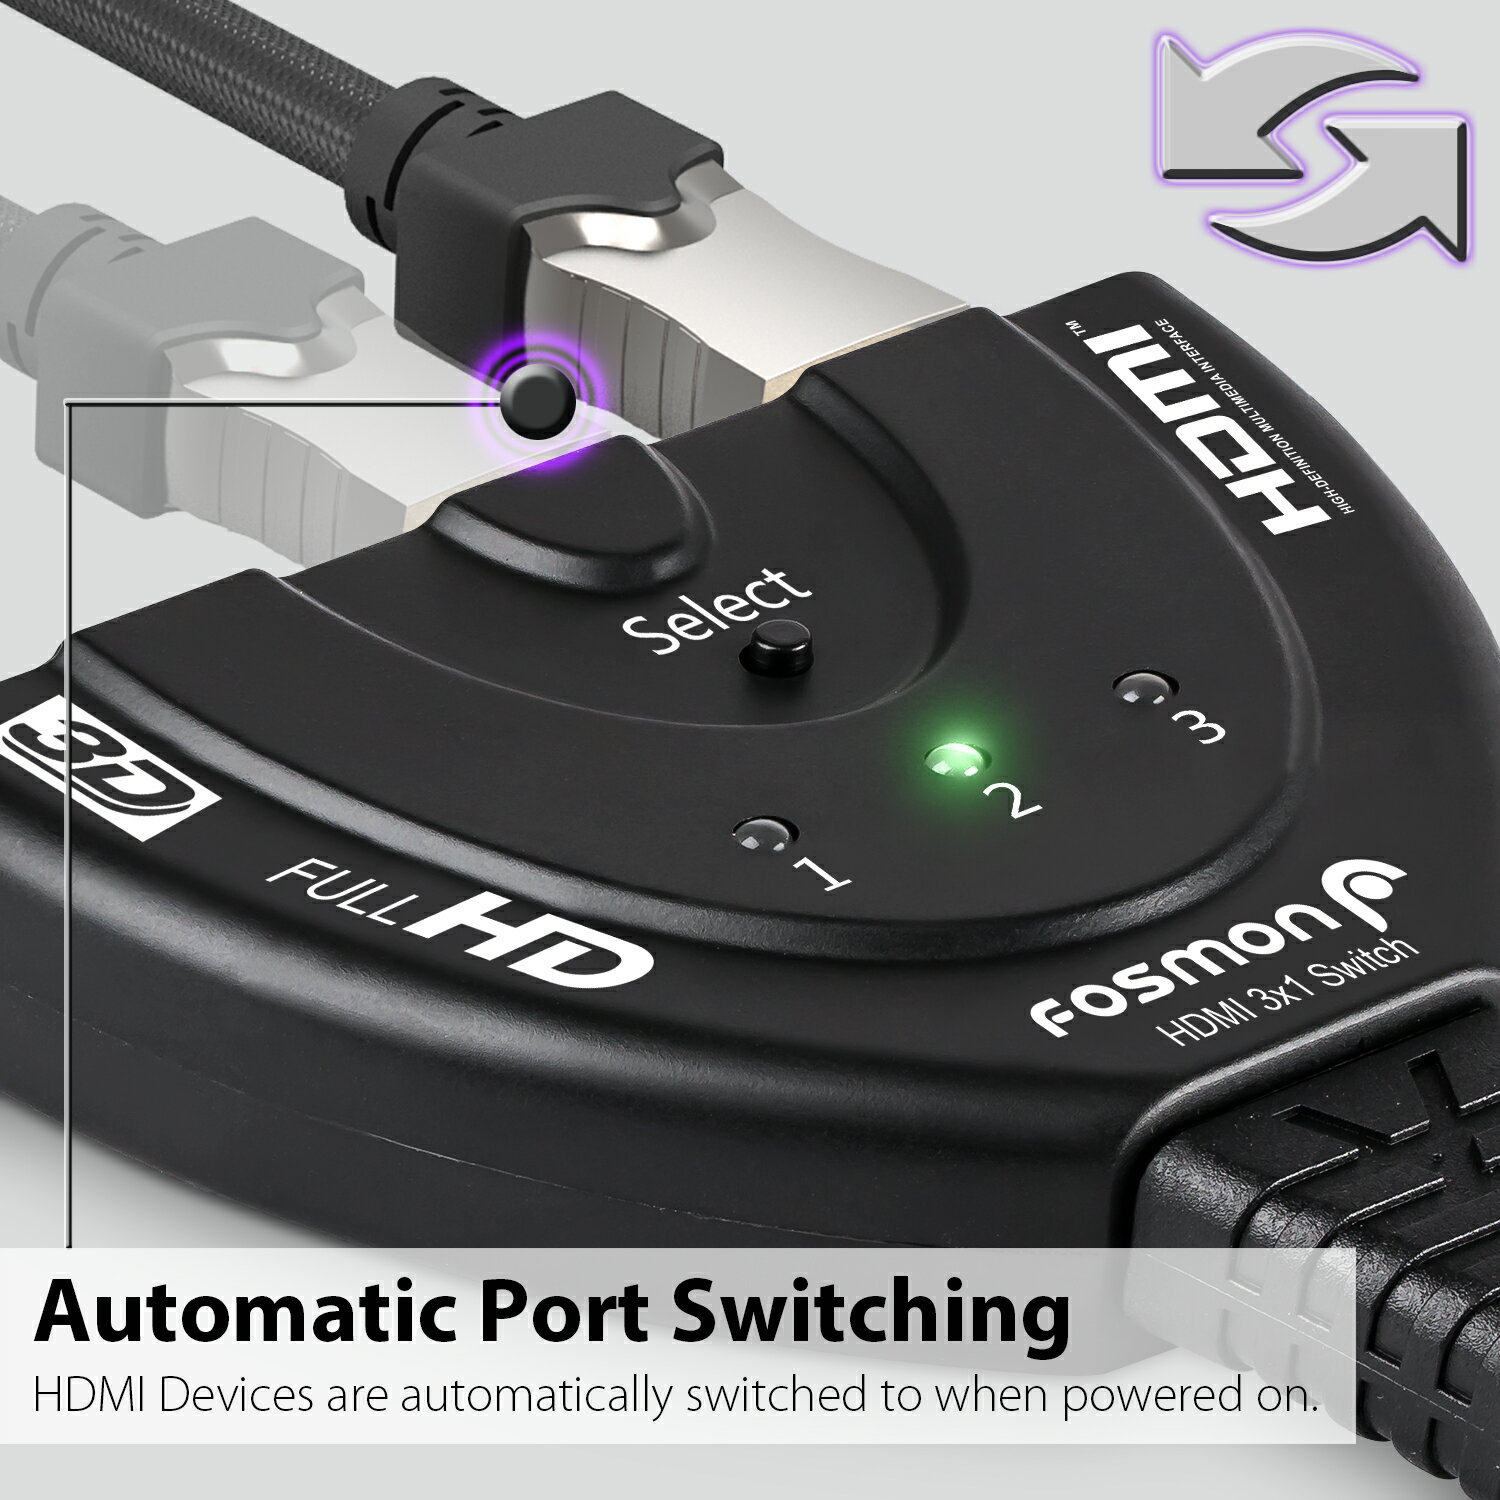 Fosmon 3 Port HDMI Switch/Switcher 3-In 1-Out with Pigtail Cable for  Blue-Ray, Cable Box, PS3/PS4, Xbox360, Wii, HDMI/HDMI Compatible Device or